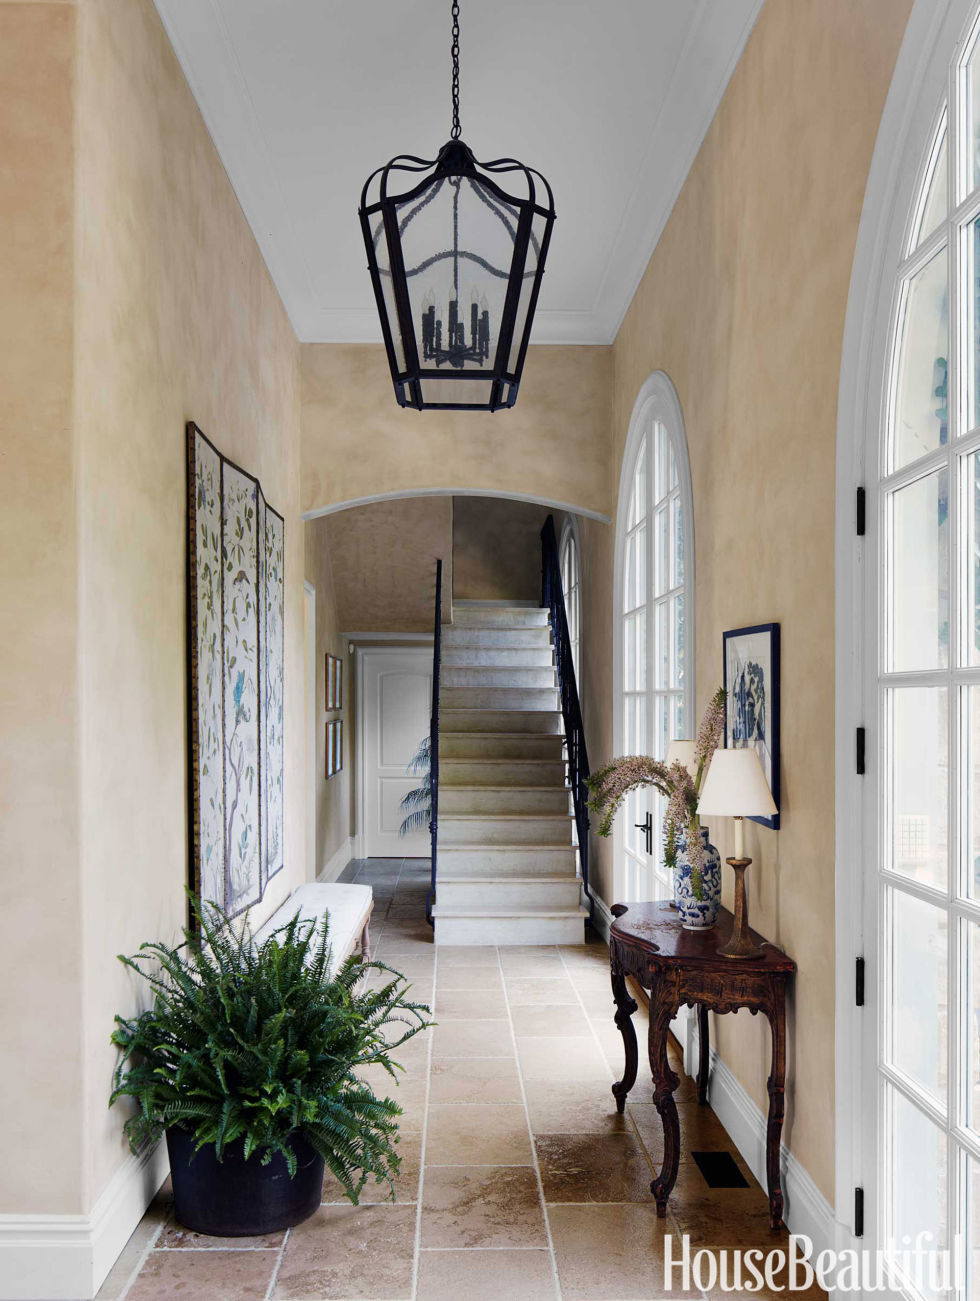 70+ Foyer Decorating Ideas   Design Pictures Of Foyers   House Beautiful Part 94